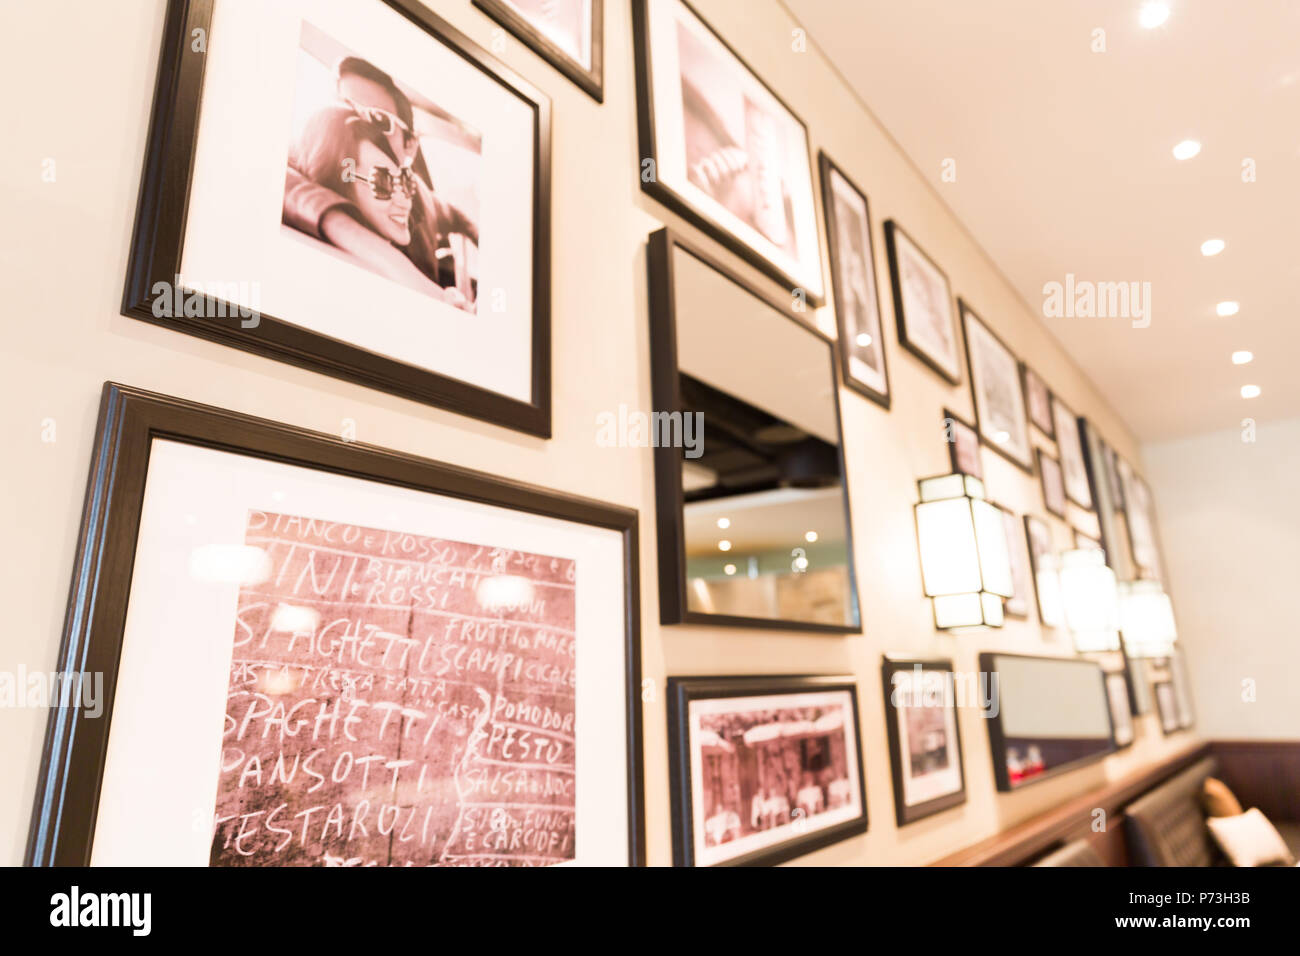 Cafe Restaurant Framed Photo Wall Decoration Stock Photo Alamy